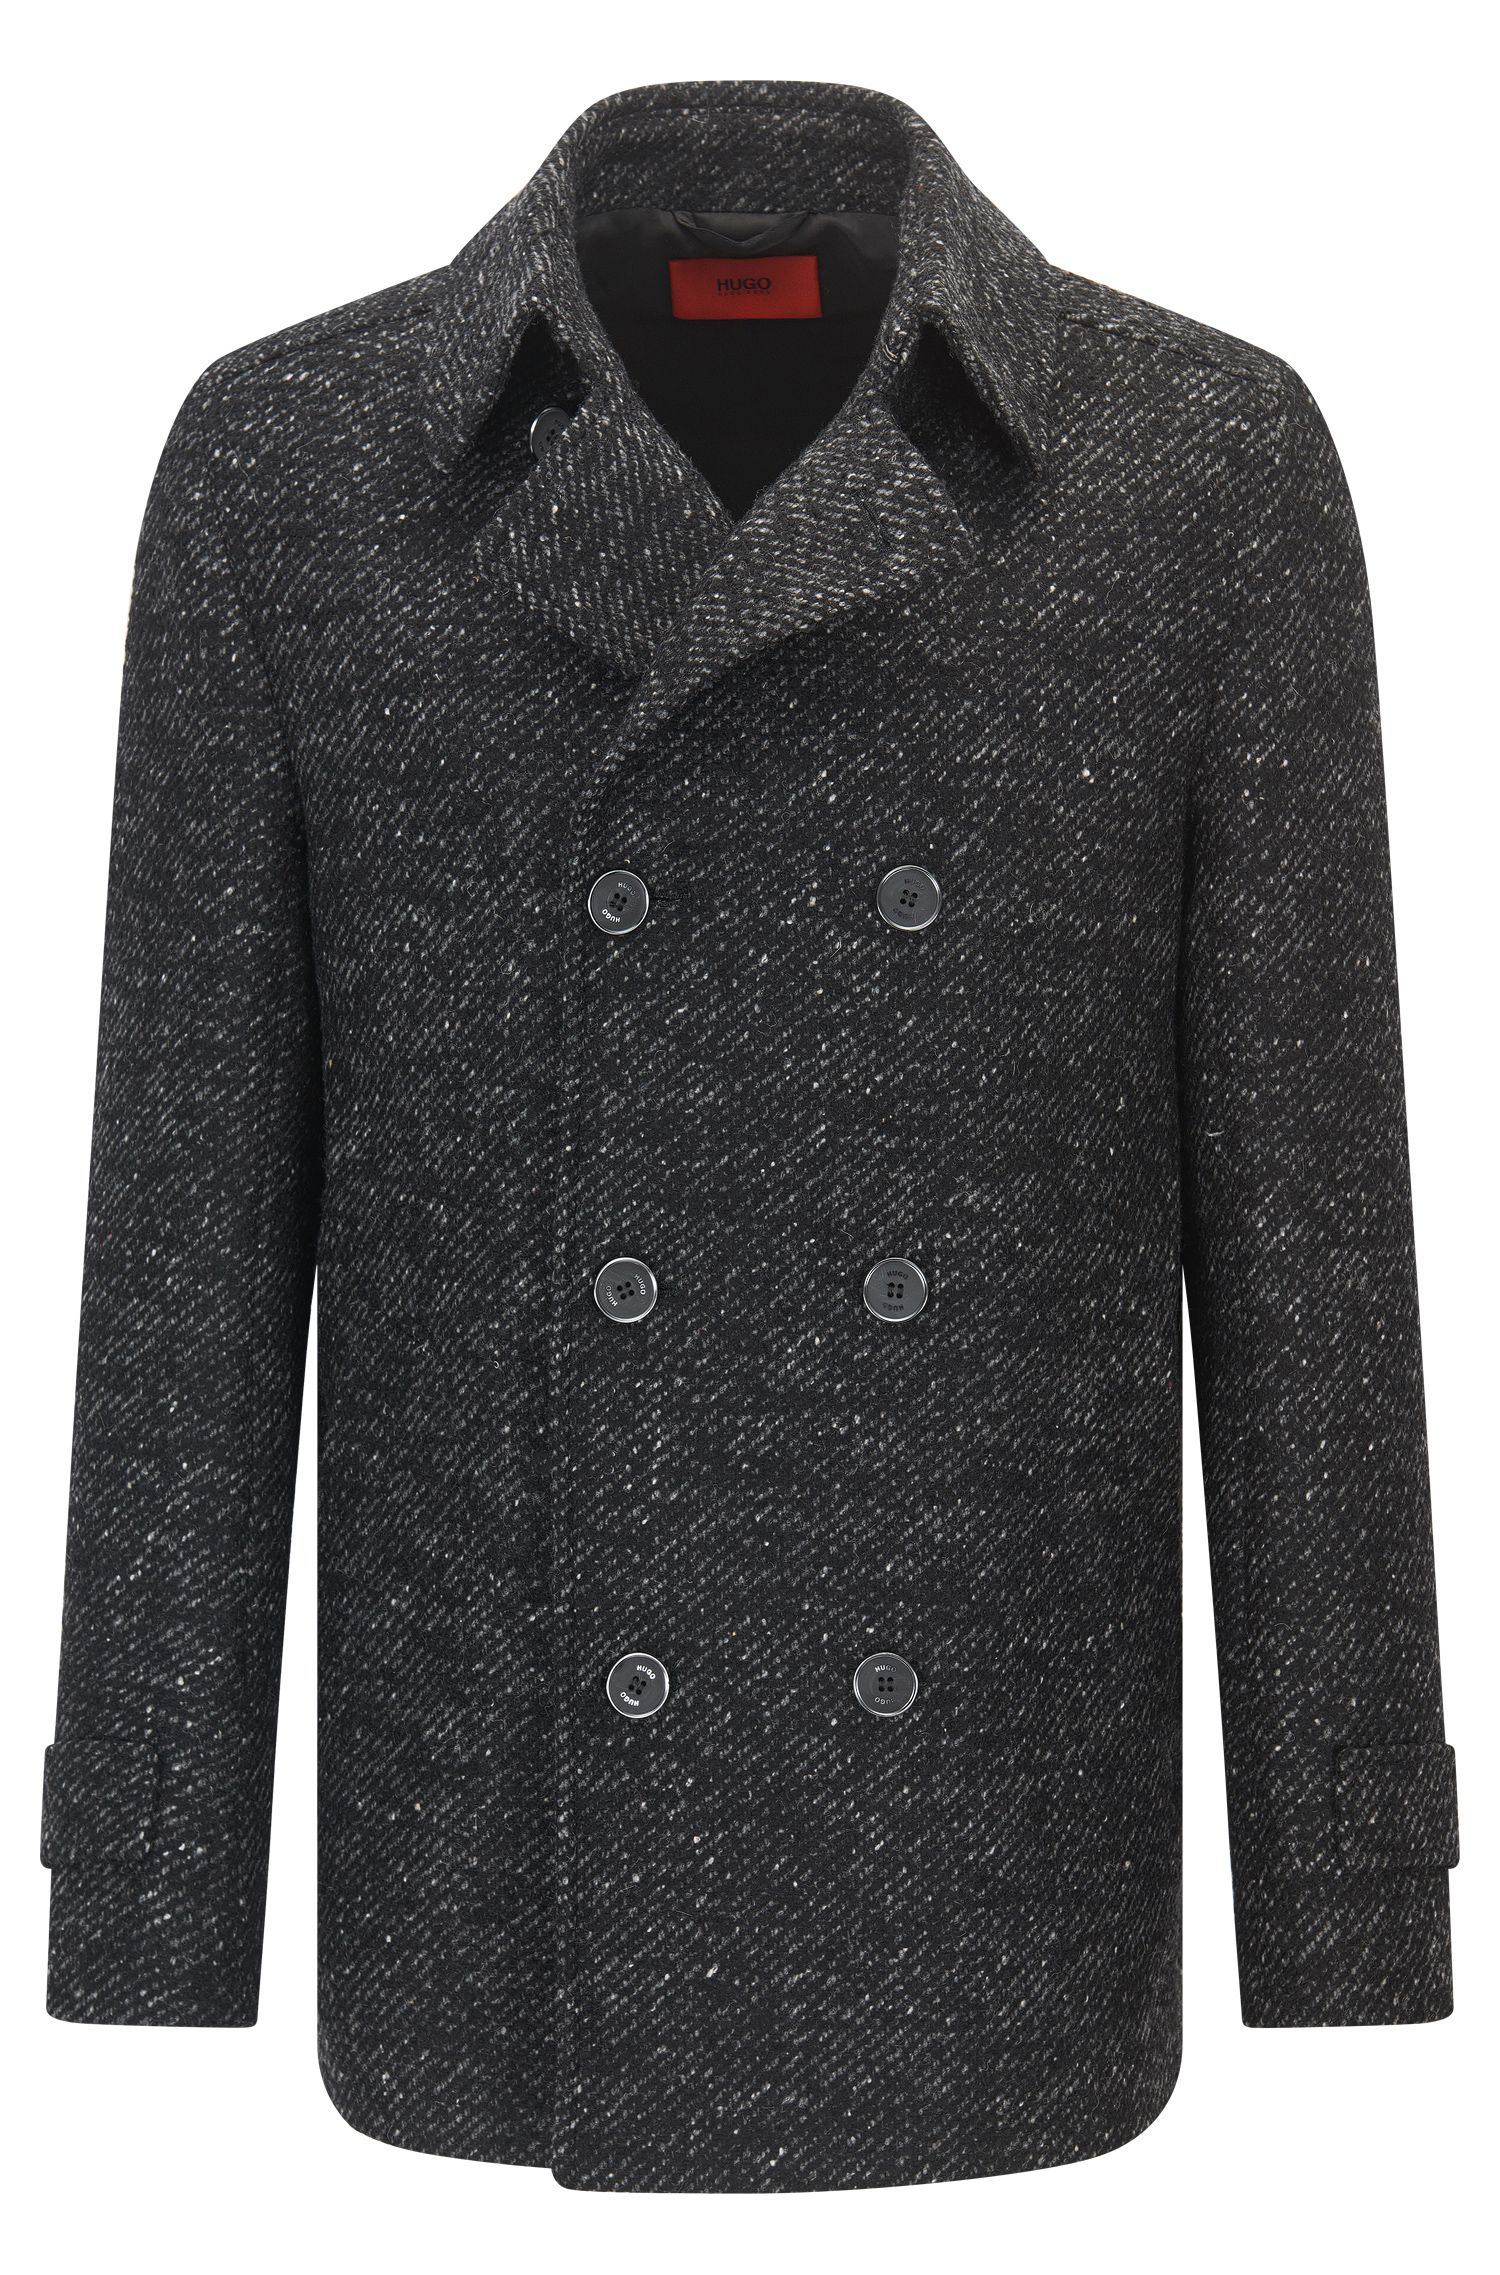 Slim-fit caban jacket in a wool blend